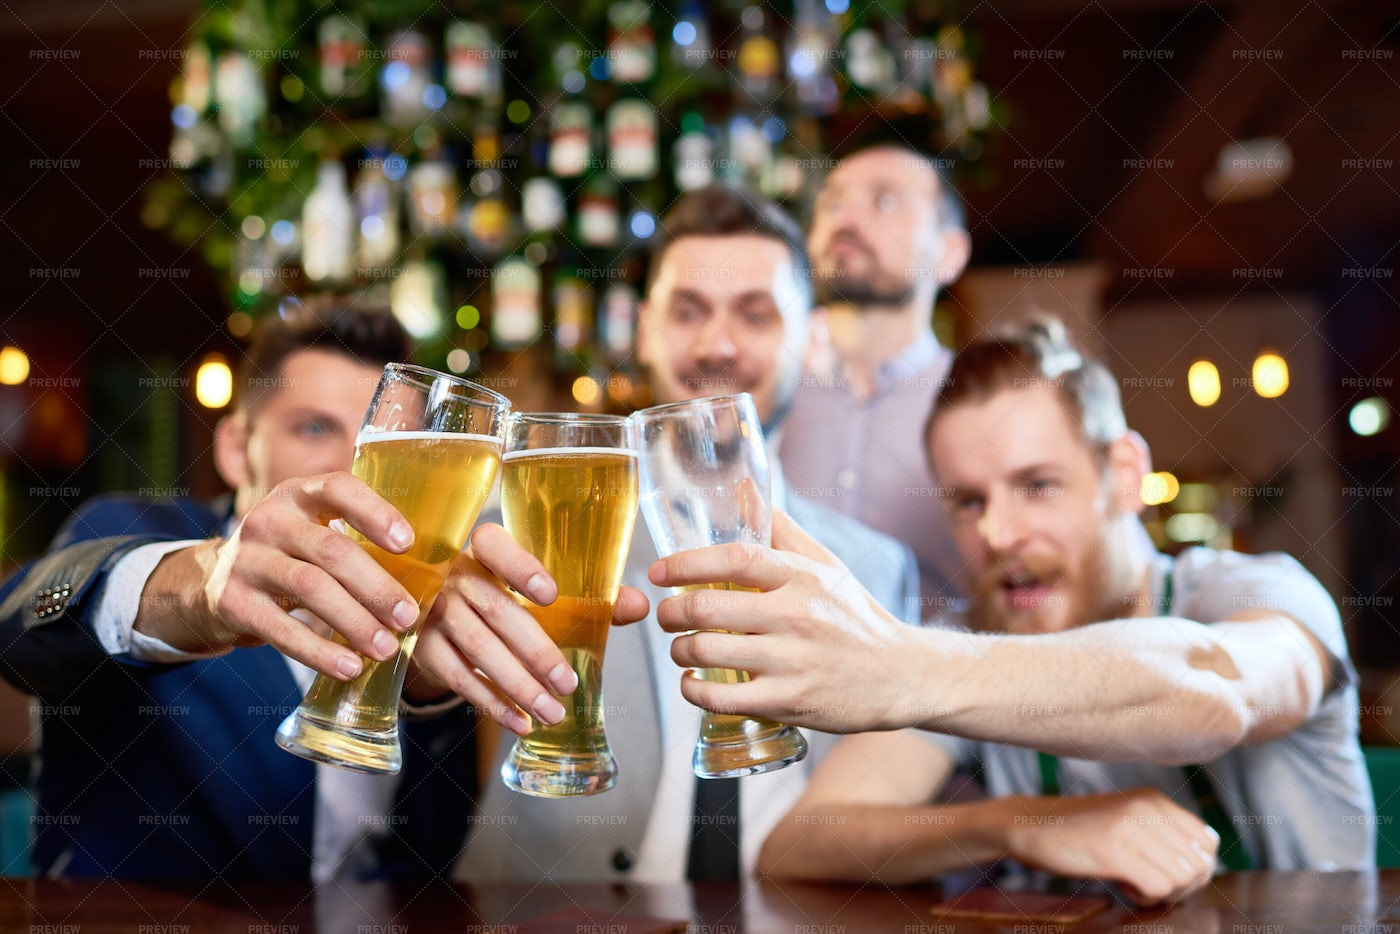 Clinking Beer Glasses Together: Stock Photos